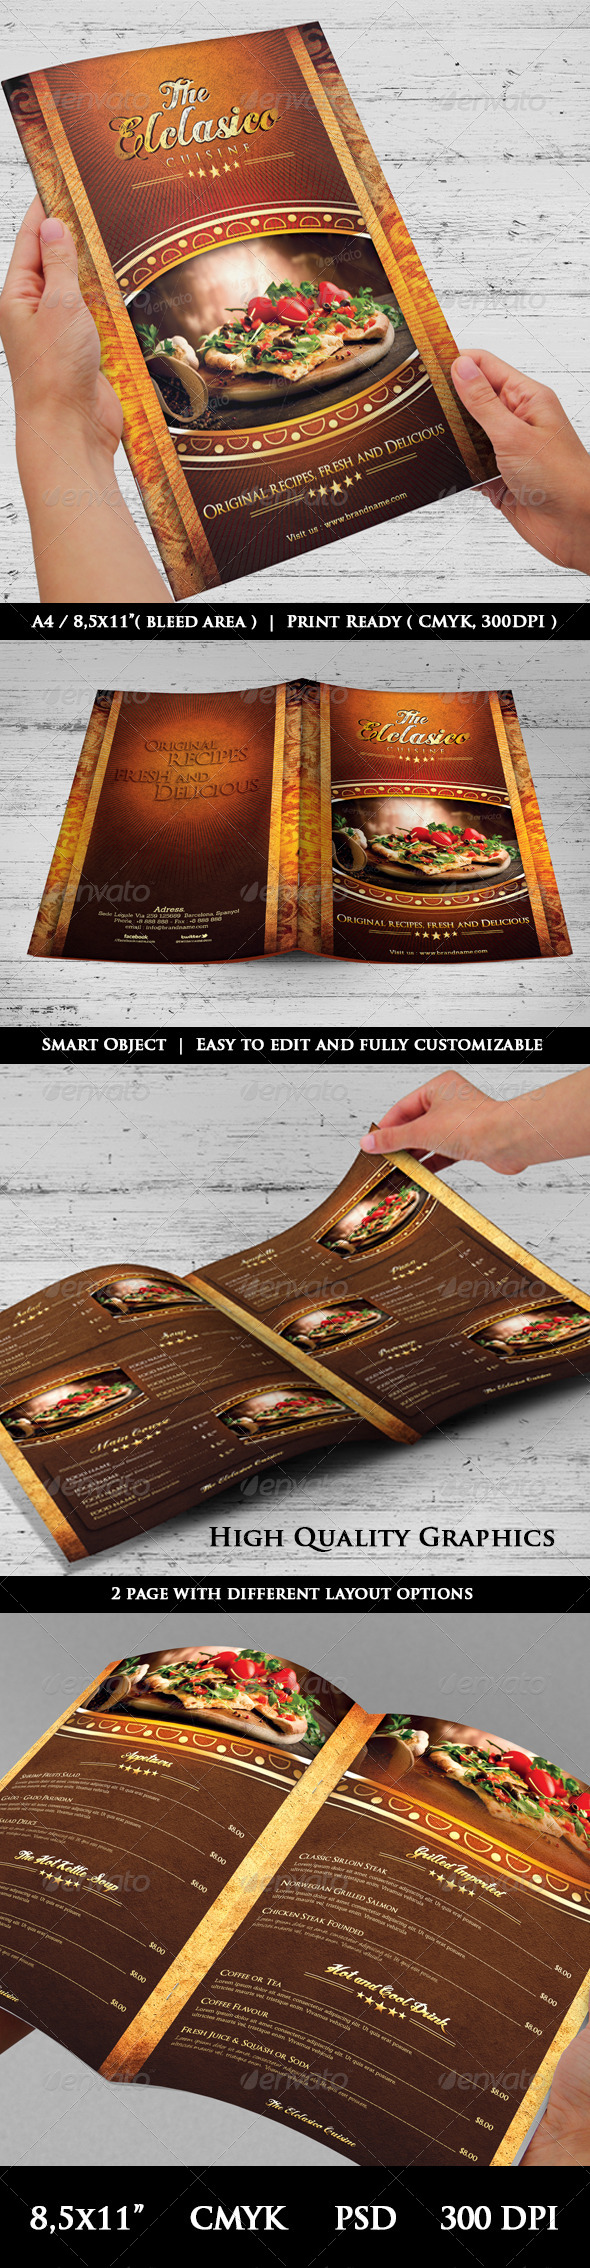 The Elclasico Cuisine Menu Templates - Food Menus Print Templates